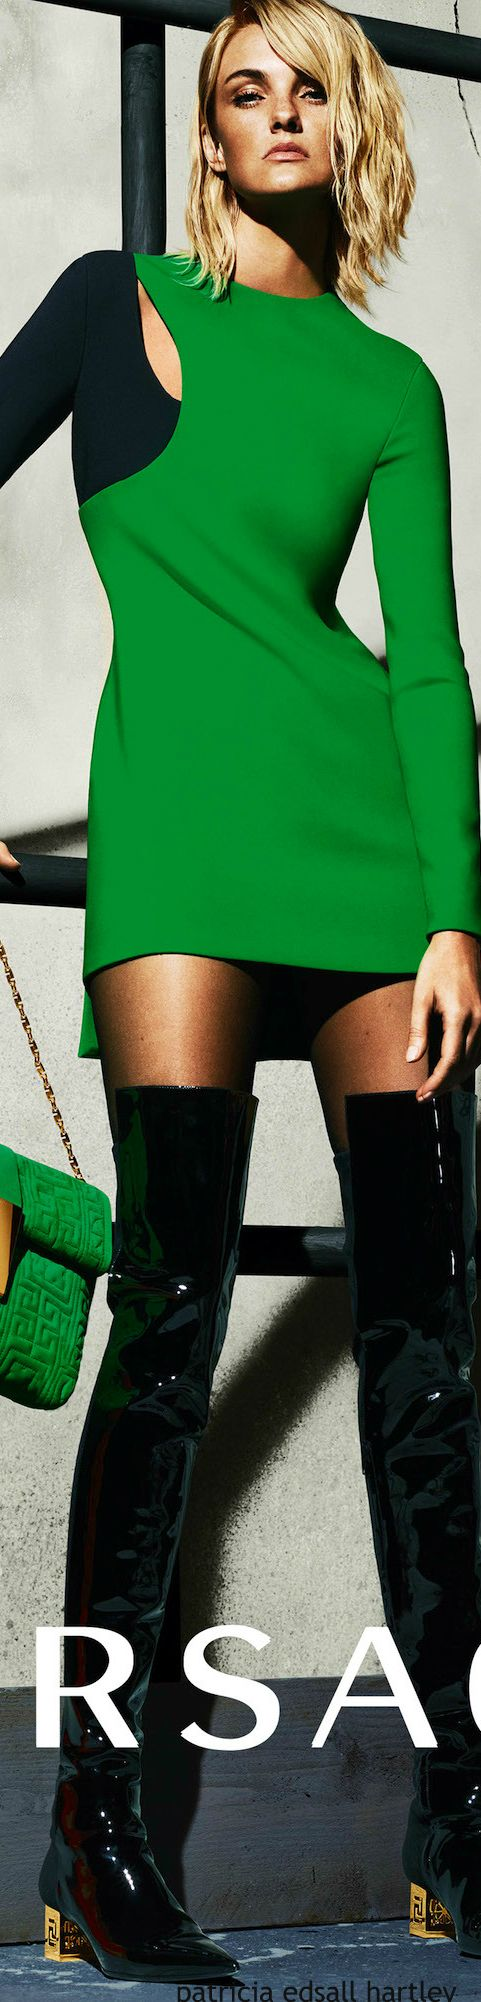 Versace 2015-2016 Ad Campaign | House of Beccaria~